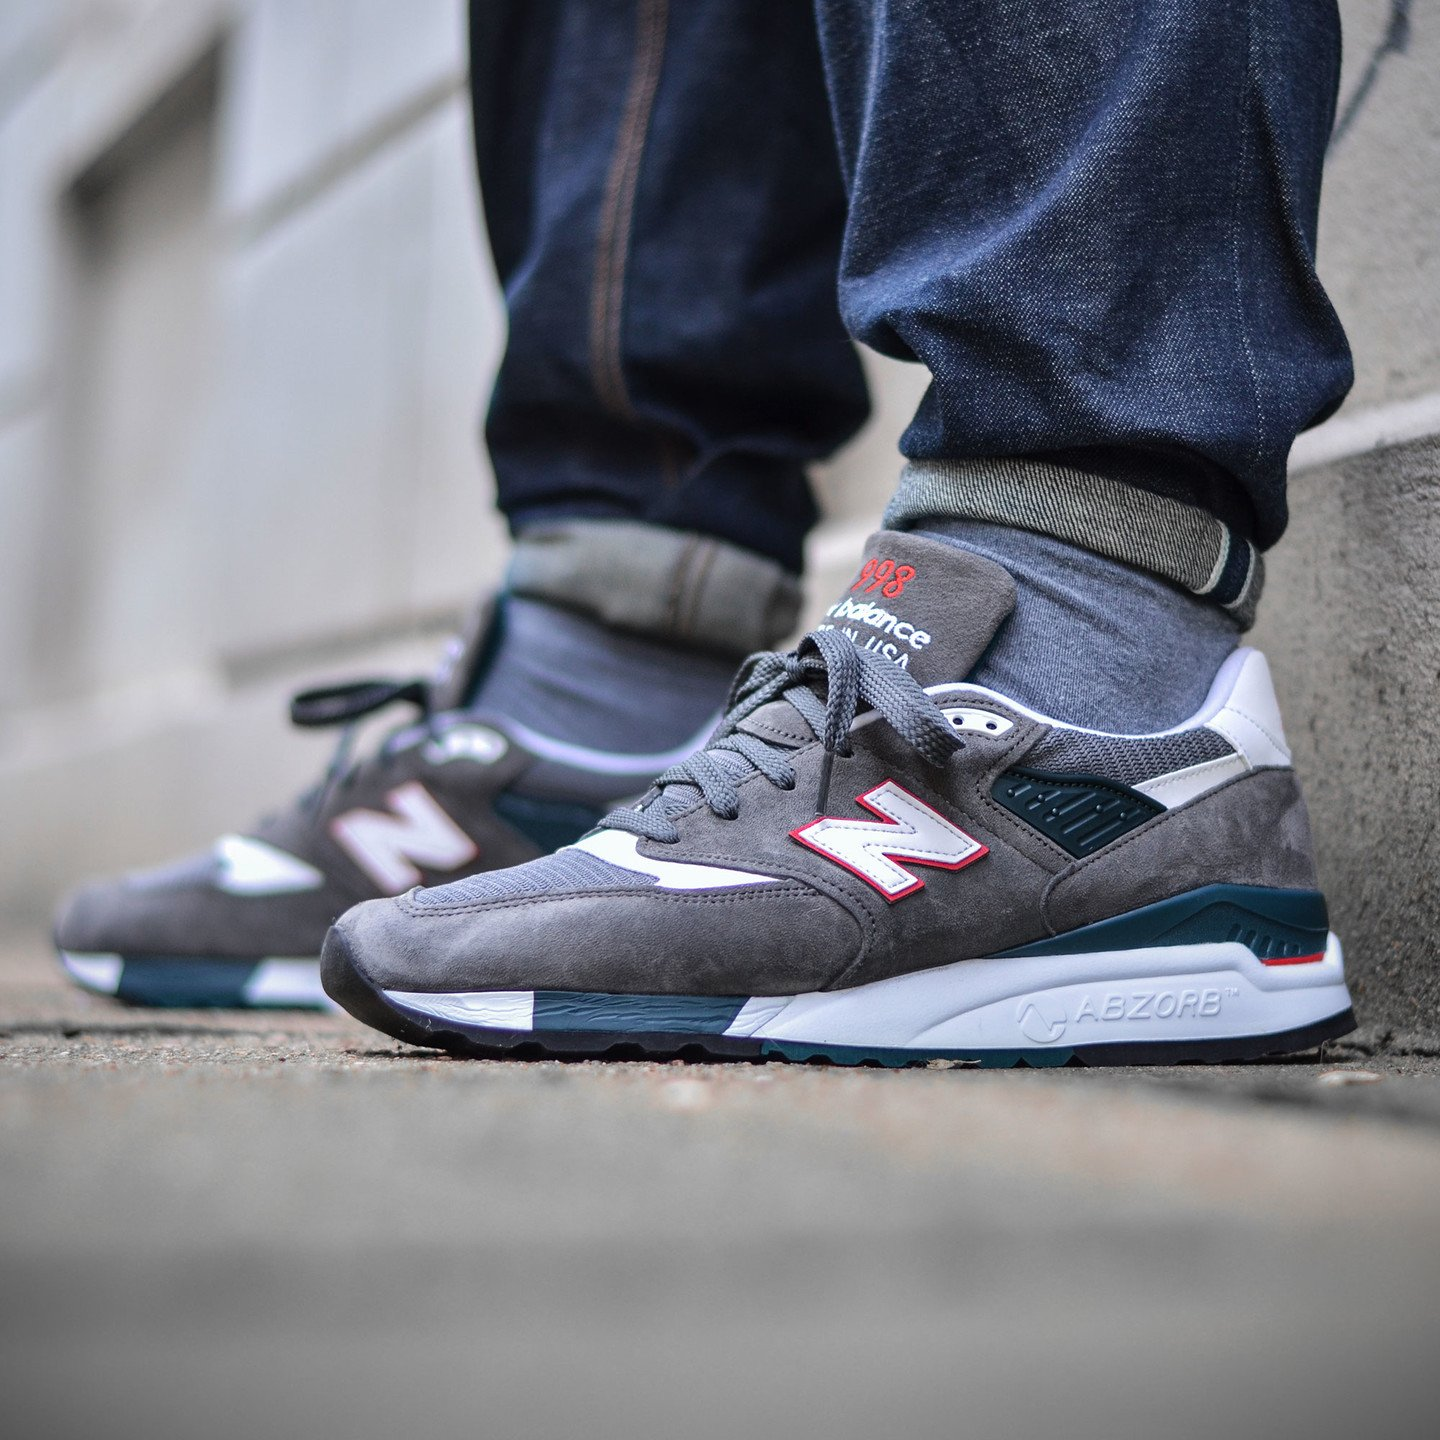 New Balance M998 CRA - Made in USA Granite Grey / White / Red M998CRA